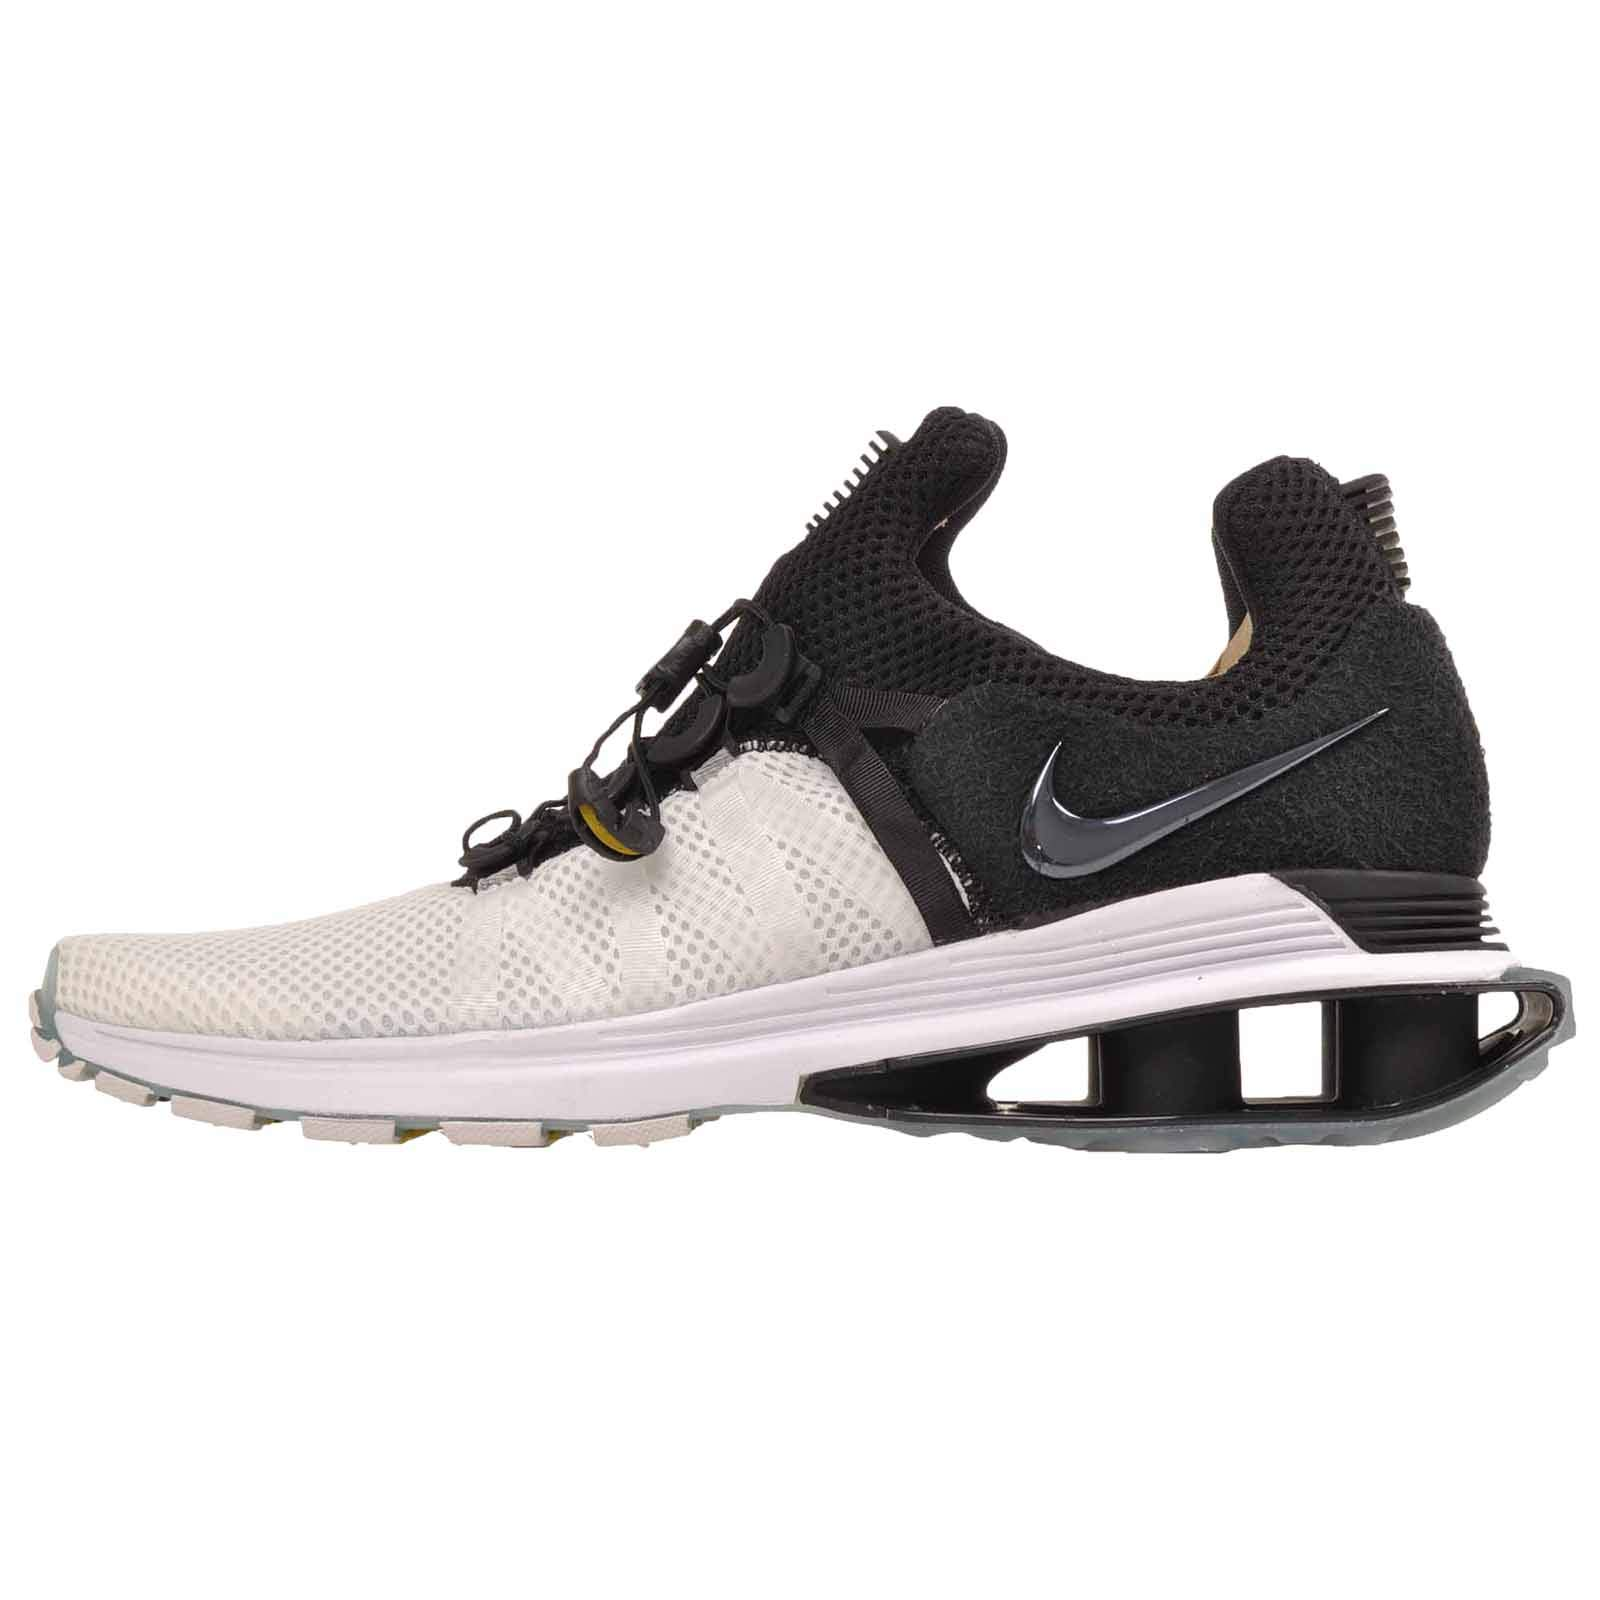 1dd529565a3 Galleon - NIKE Men s Shox Gravity White Black White Nylon Running Shoes 8.5  (D) M US